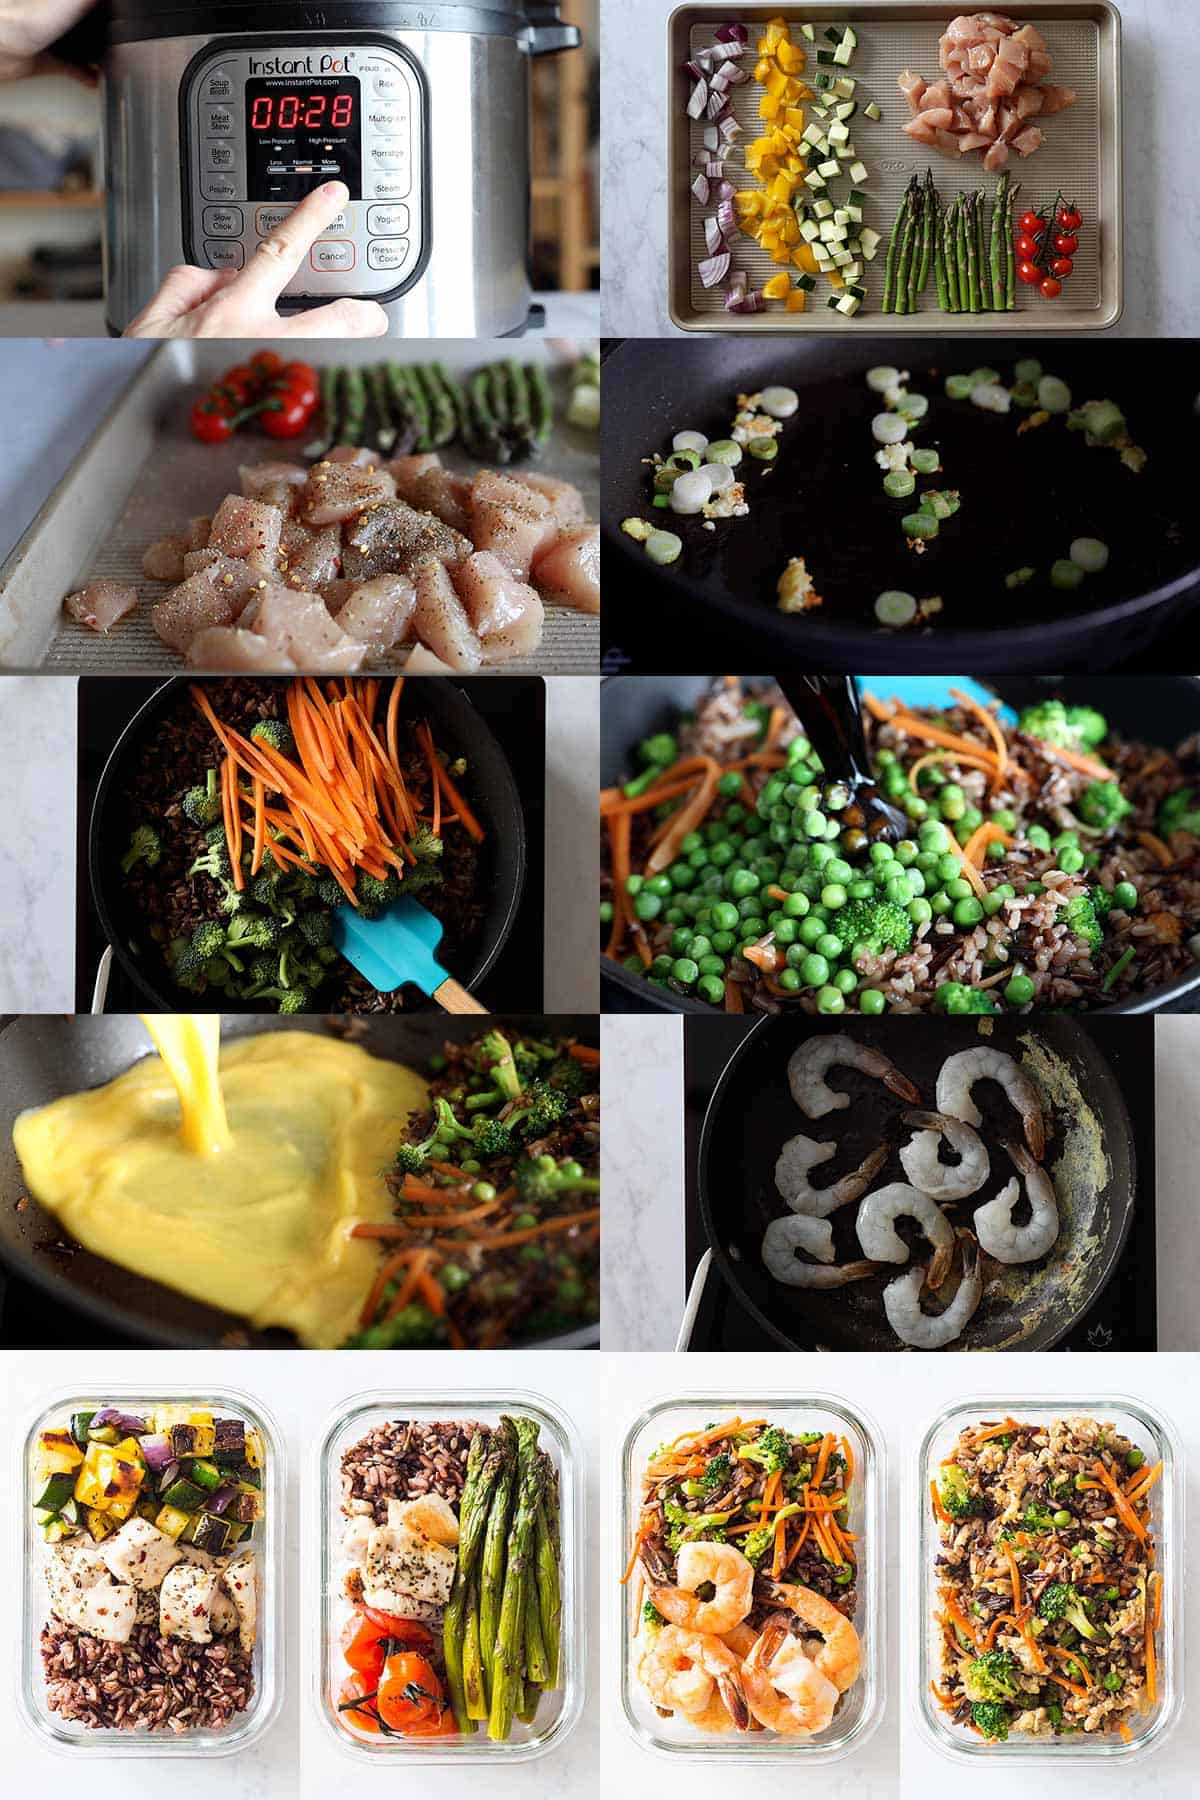 Step by step photo instructions of how to meal prep 4 different lunches.